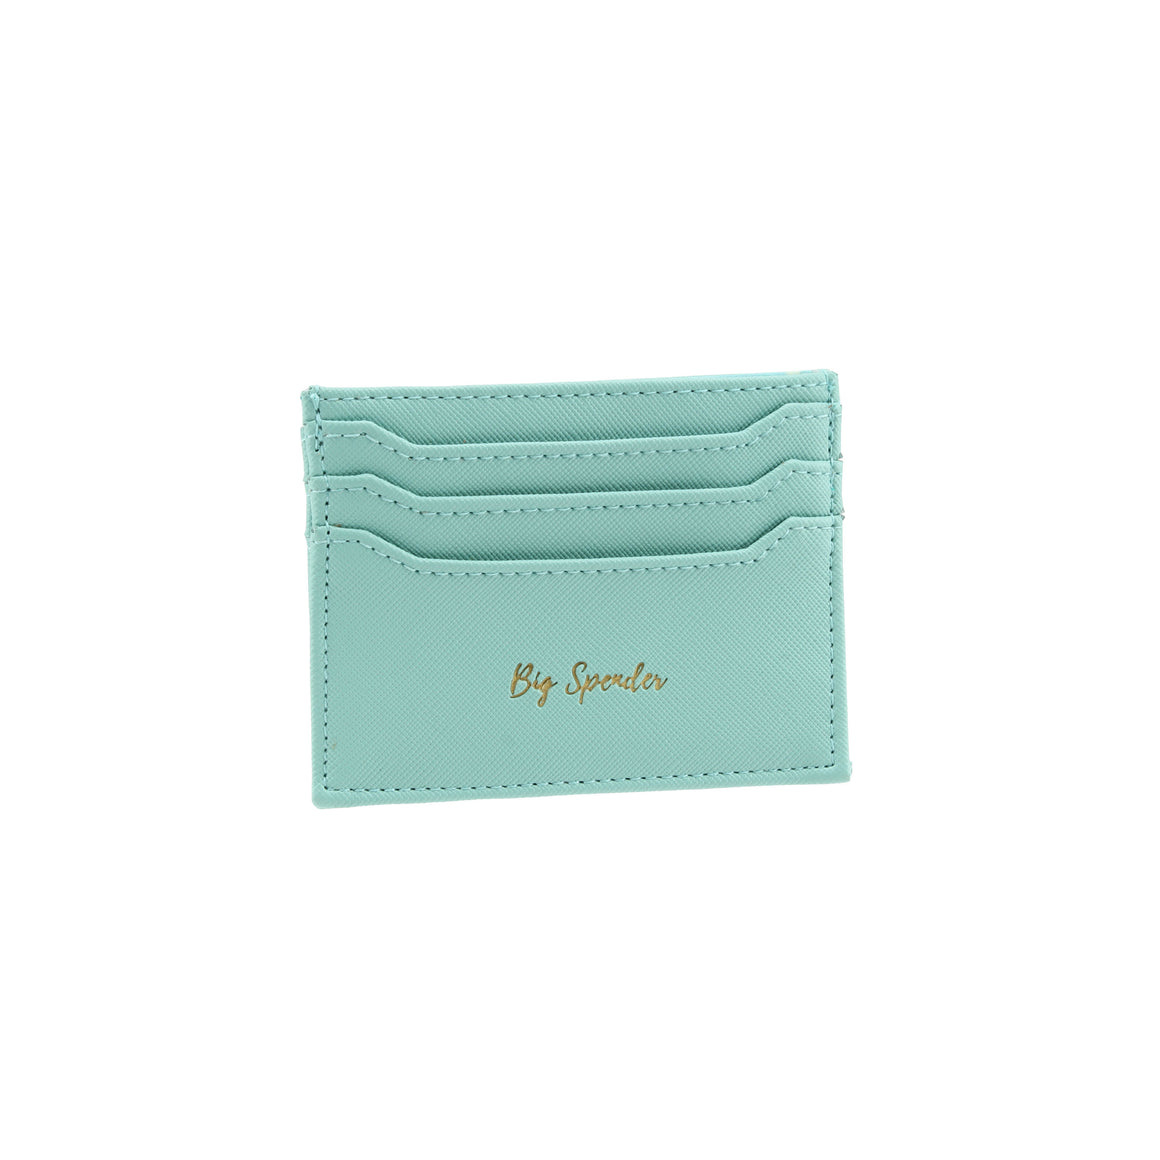 Willow & Rose 'Big Spender' Teal Card Holder